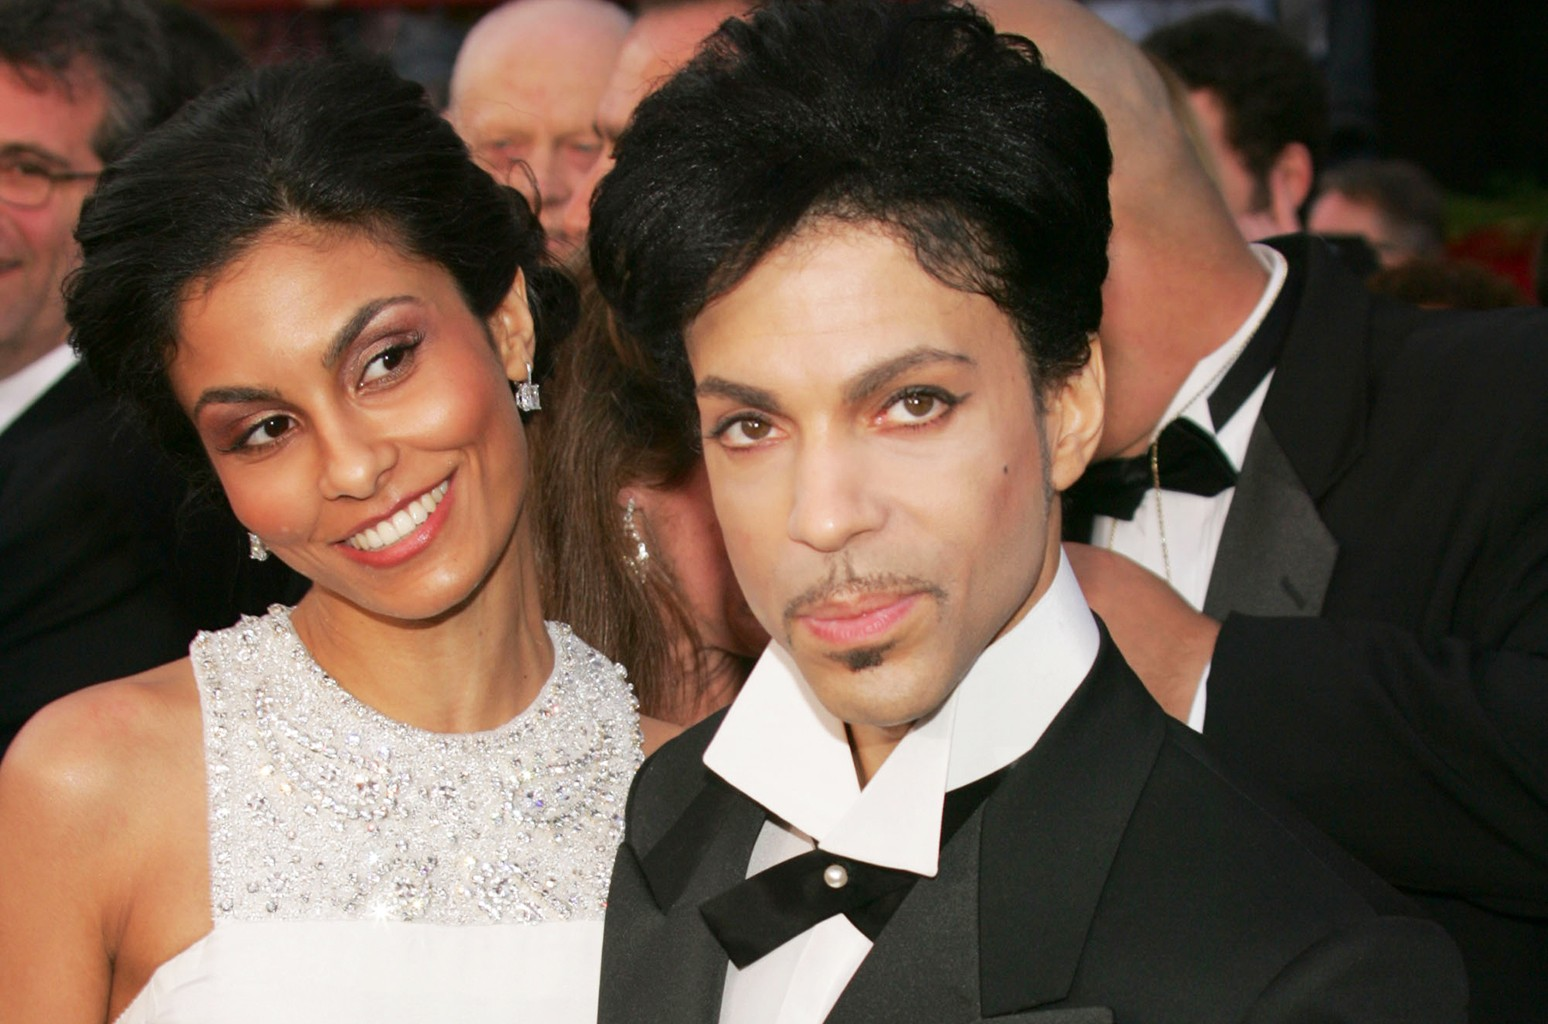 Prince and Manuela divorce